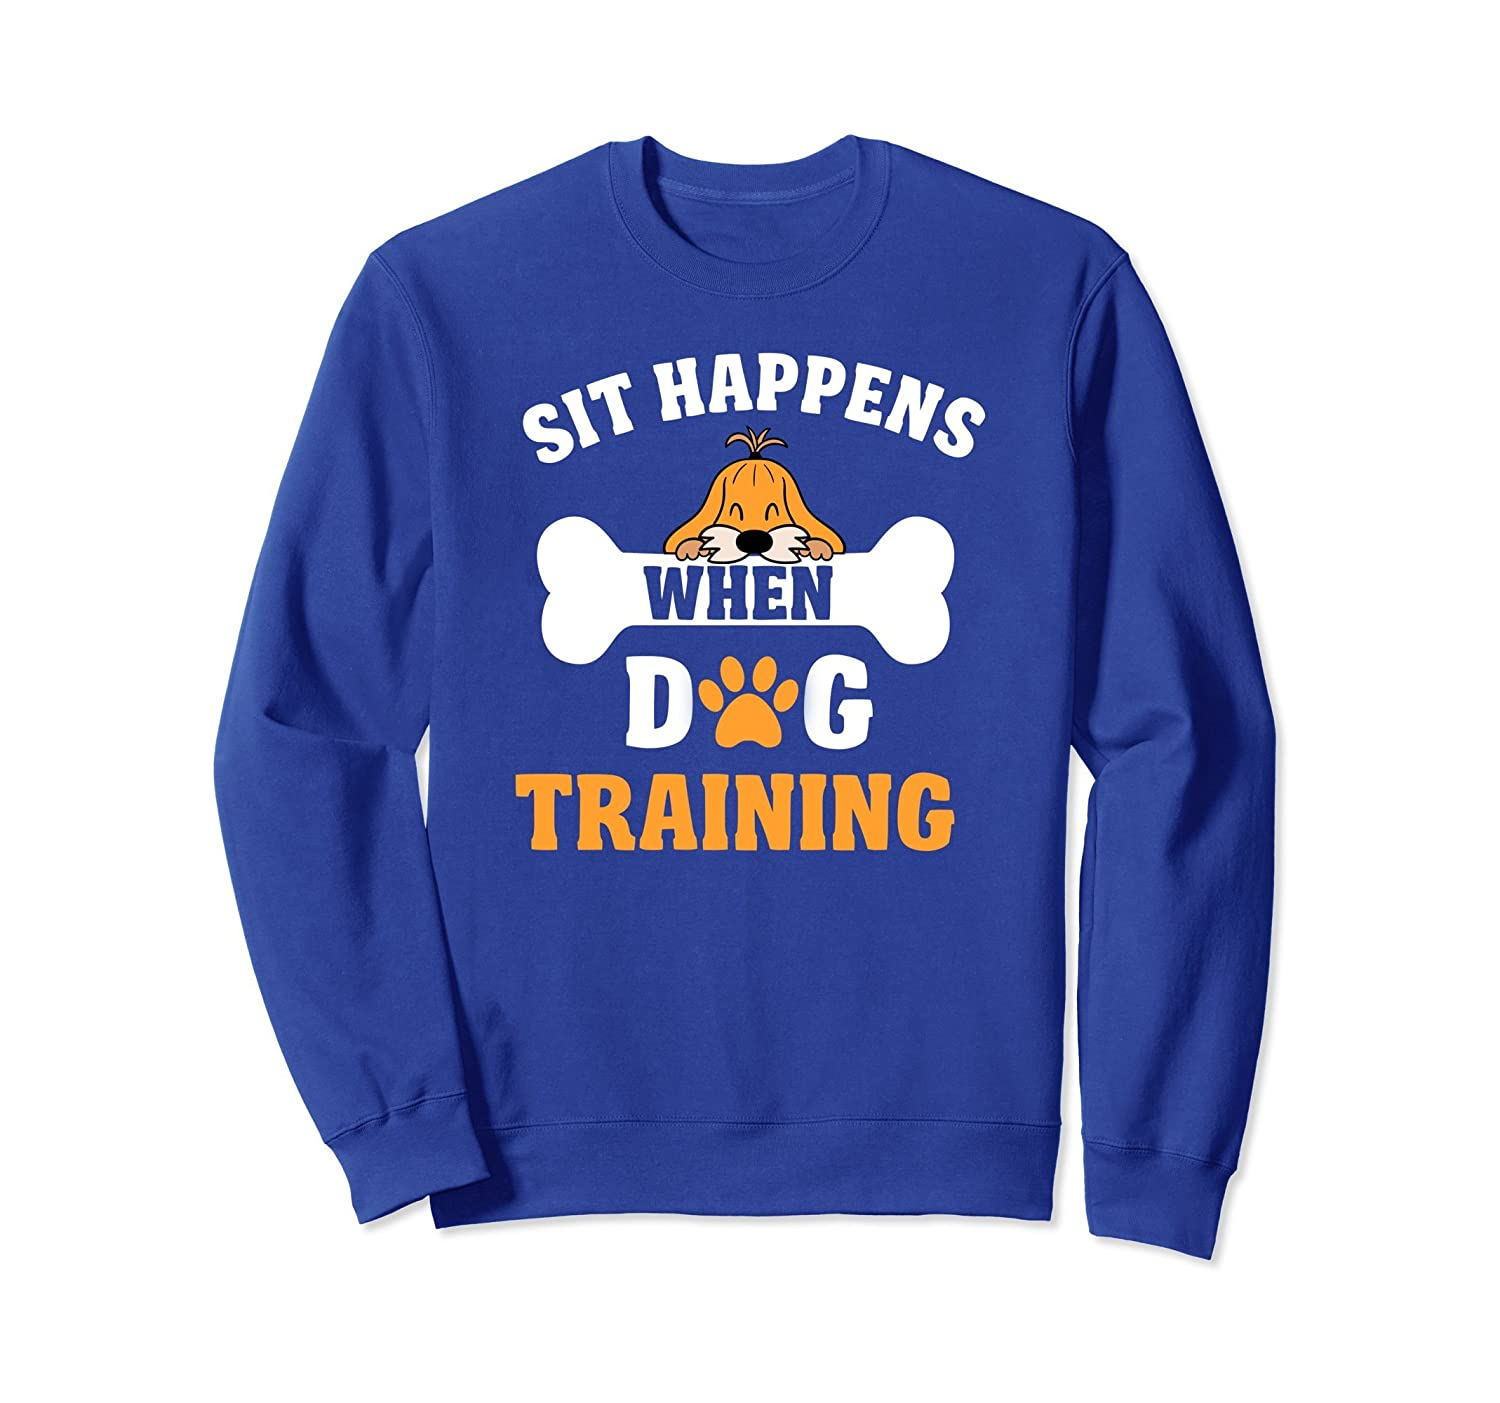 Sit Happens Funny Dog Training Sweatshirt for Pet Owners-AZP